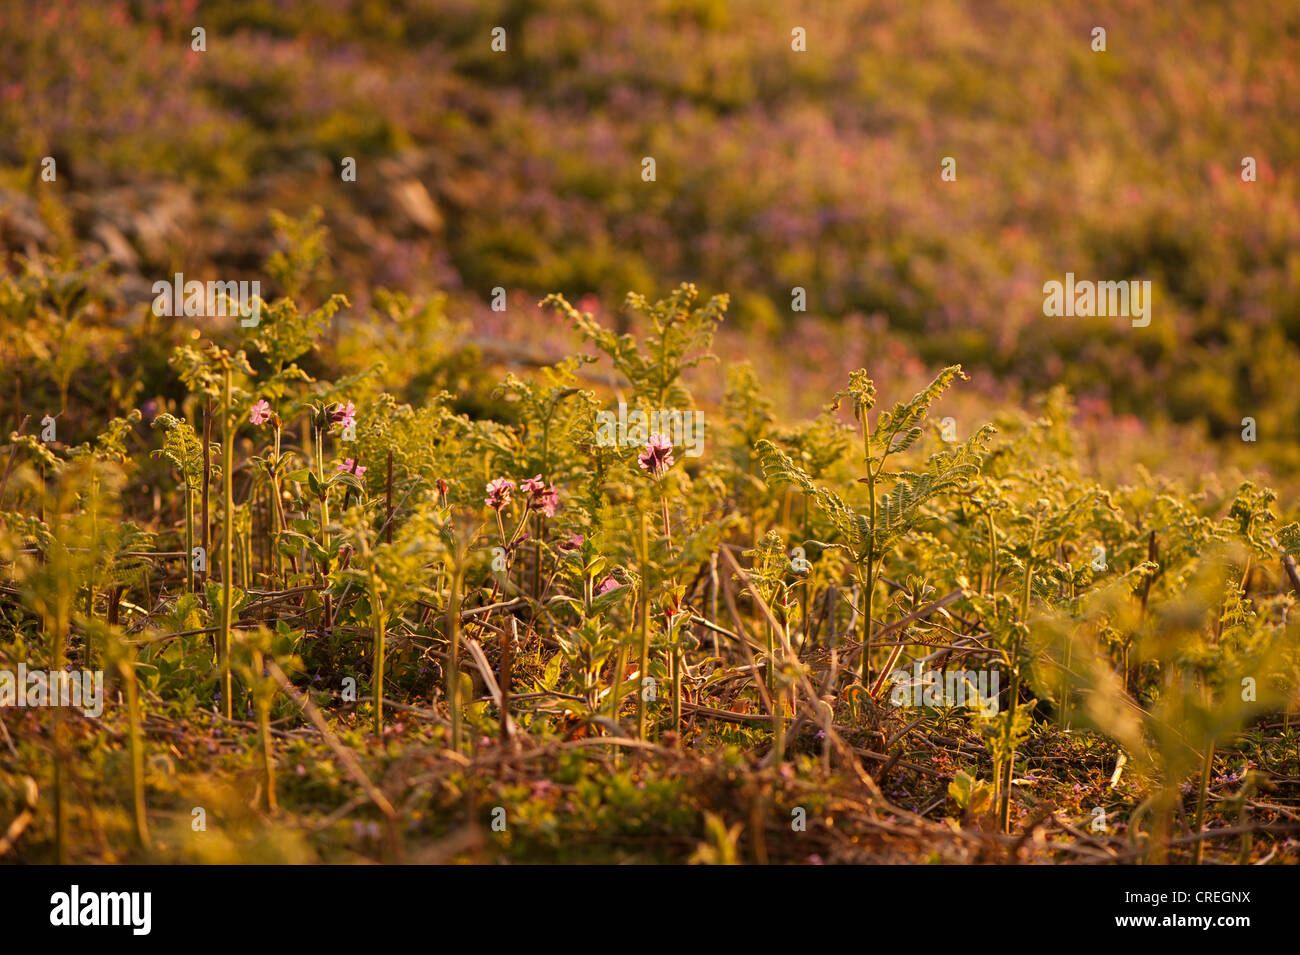 Red Campion, Silene dioica, and Bracken, Pteridium aquilinum. at dusk Stock Photo